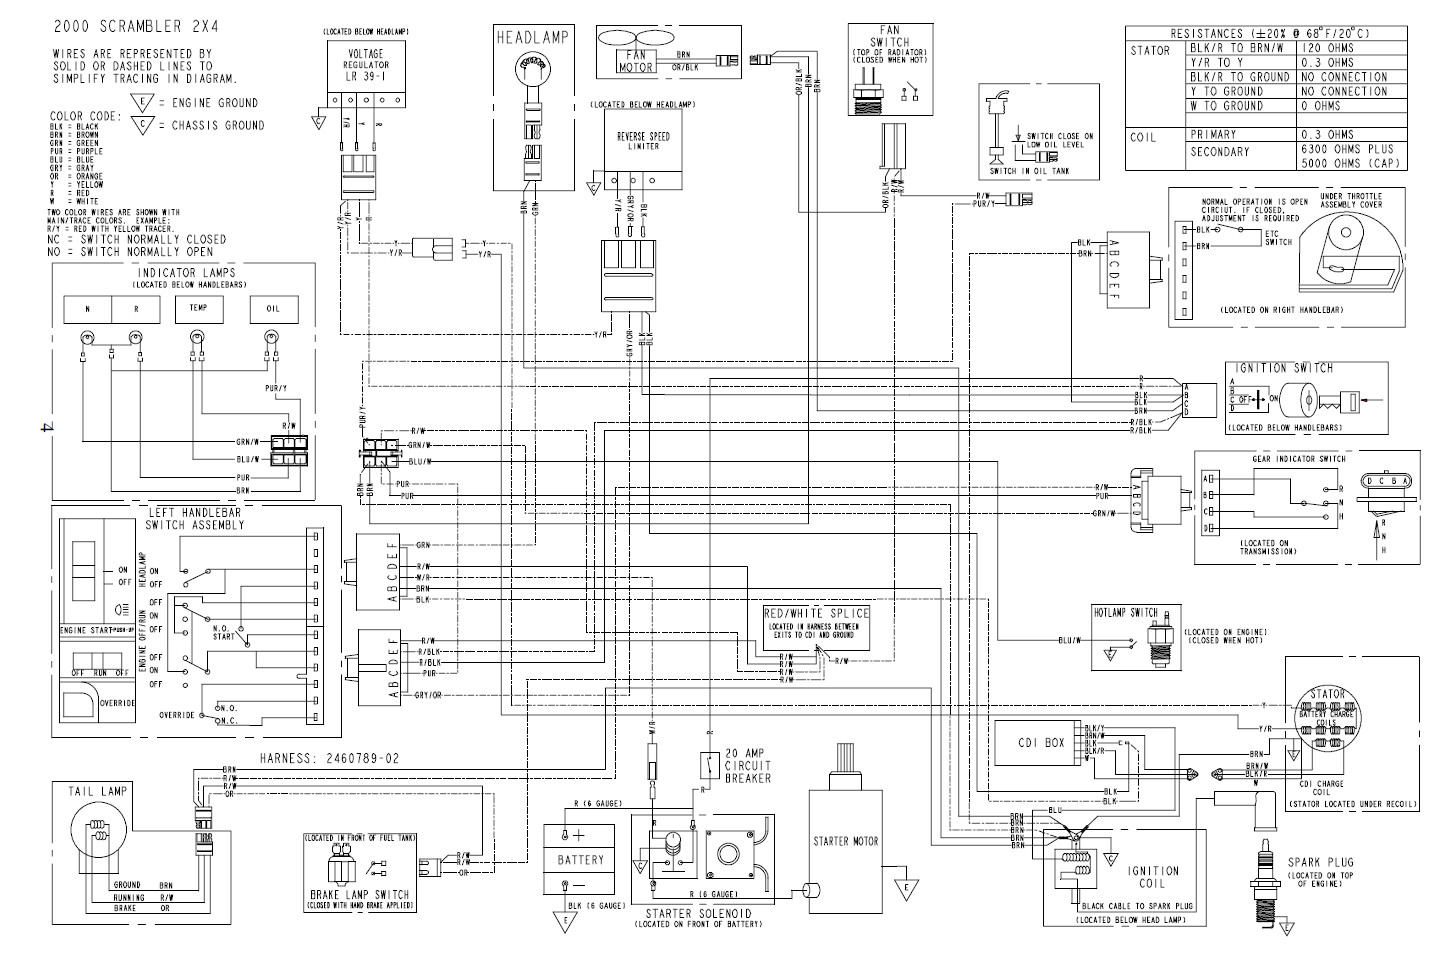 rzr 900 wiring diagram product wiring diagrams u2022 rh genesisventures us 2009 Polaris RZR 800 Wiring Diagram 2012 rzr 800 wiring diagram